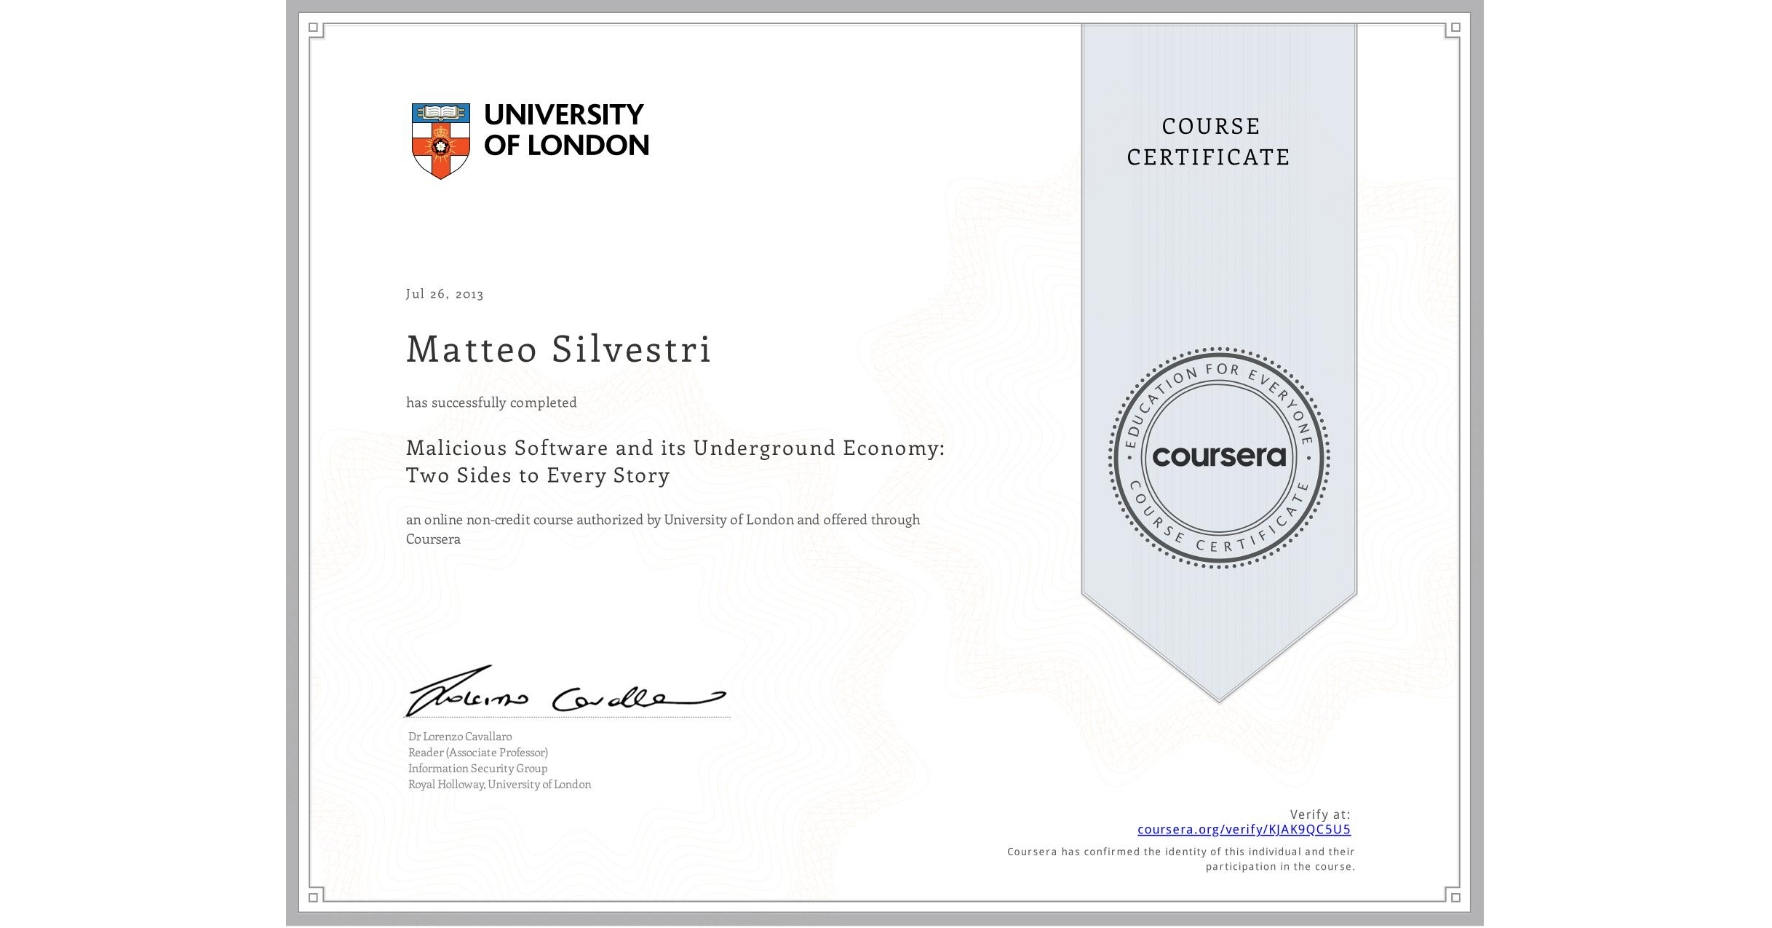 View certificate for Matteo Silvestri, Malicious Software and its Underground Economy: Two Sides to Every Story, an online non-credit course authorized by University of London and offered through Coursera